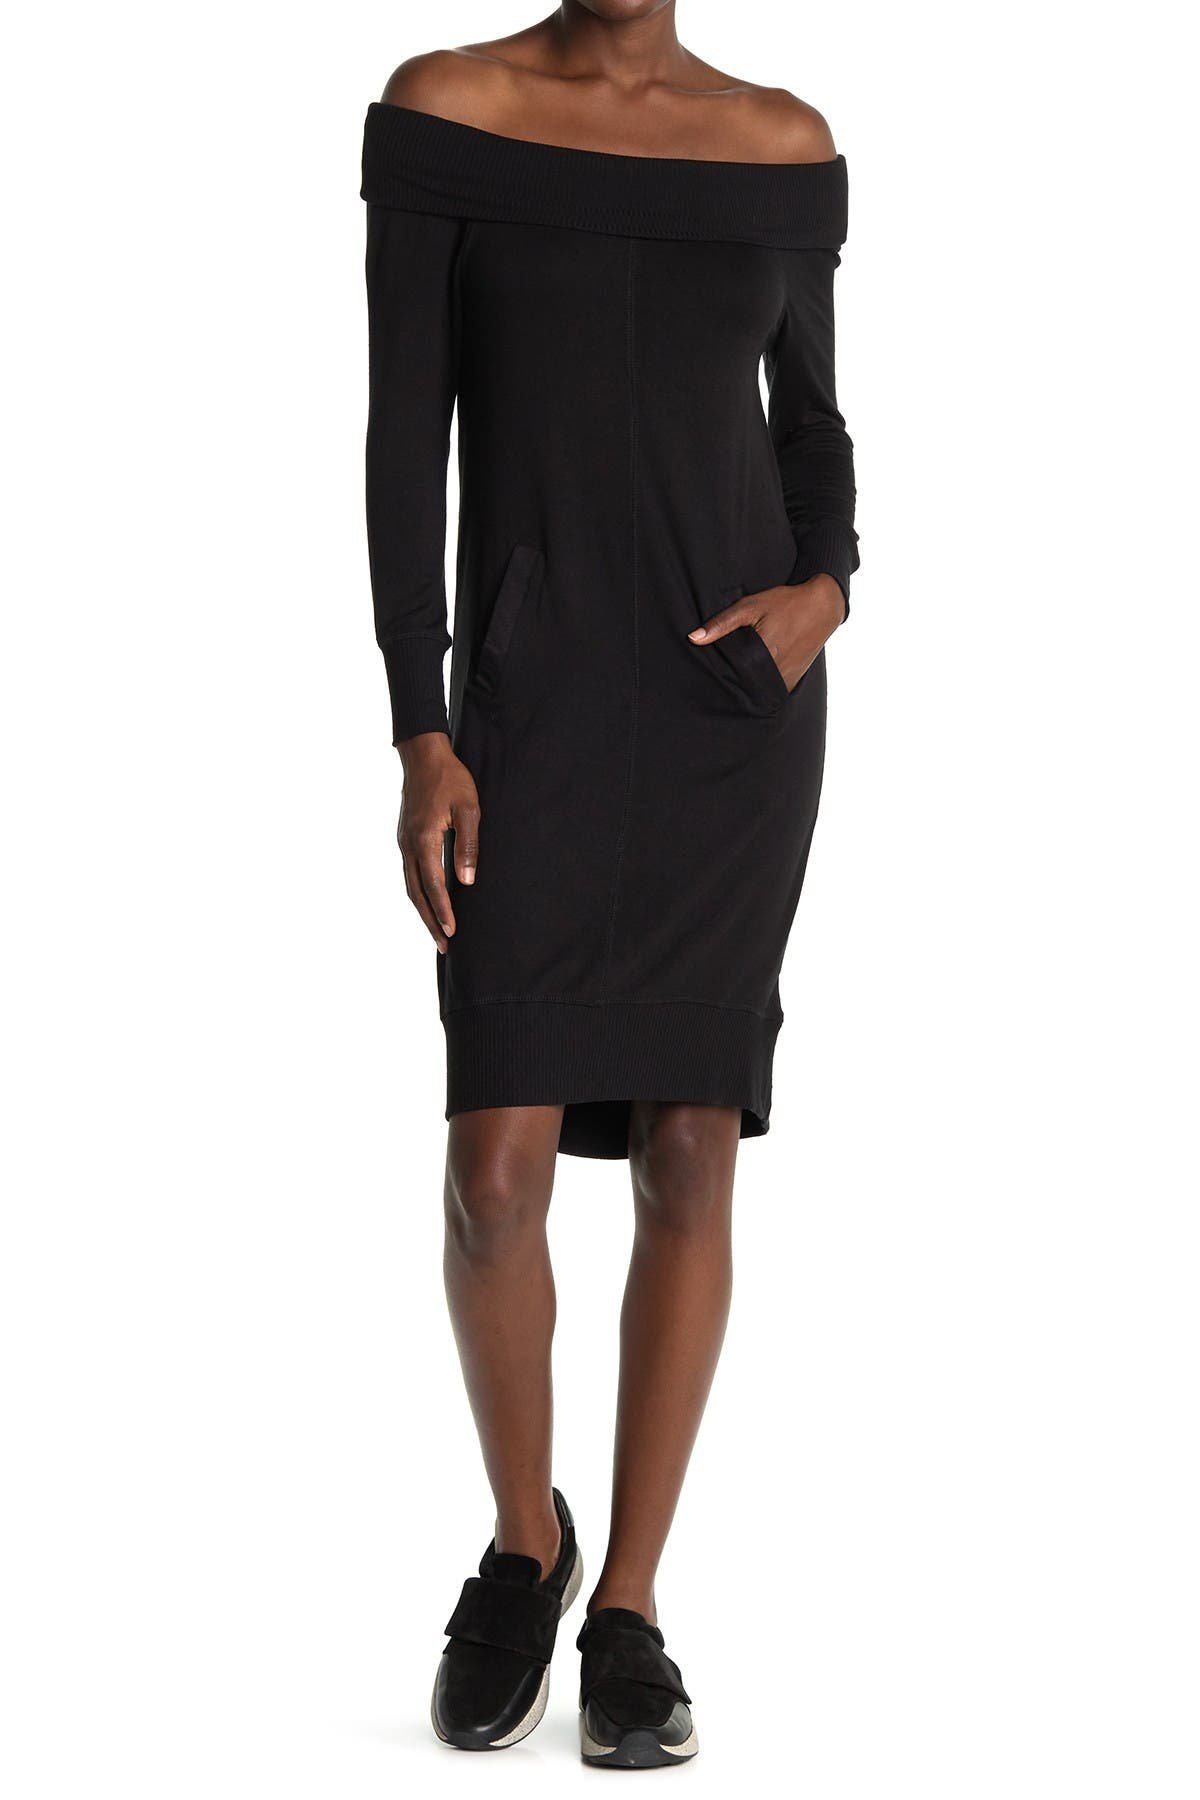 Image of 14TH PLACE Off-The-Shoulder Tunic Sweater Dress